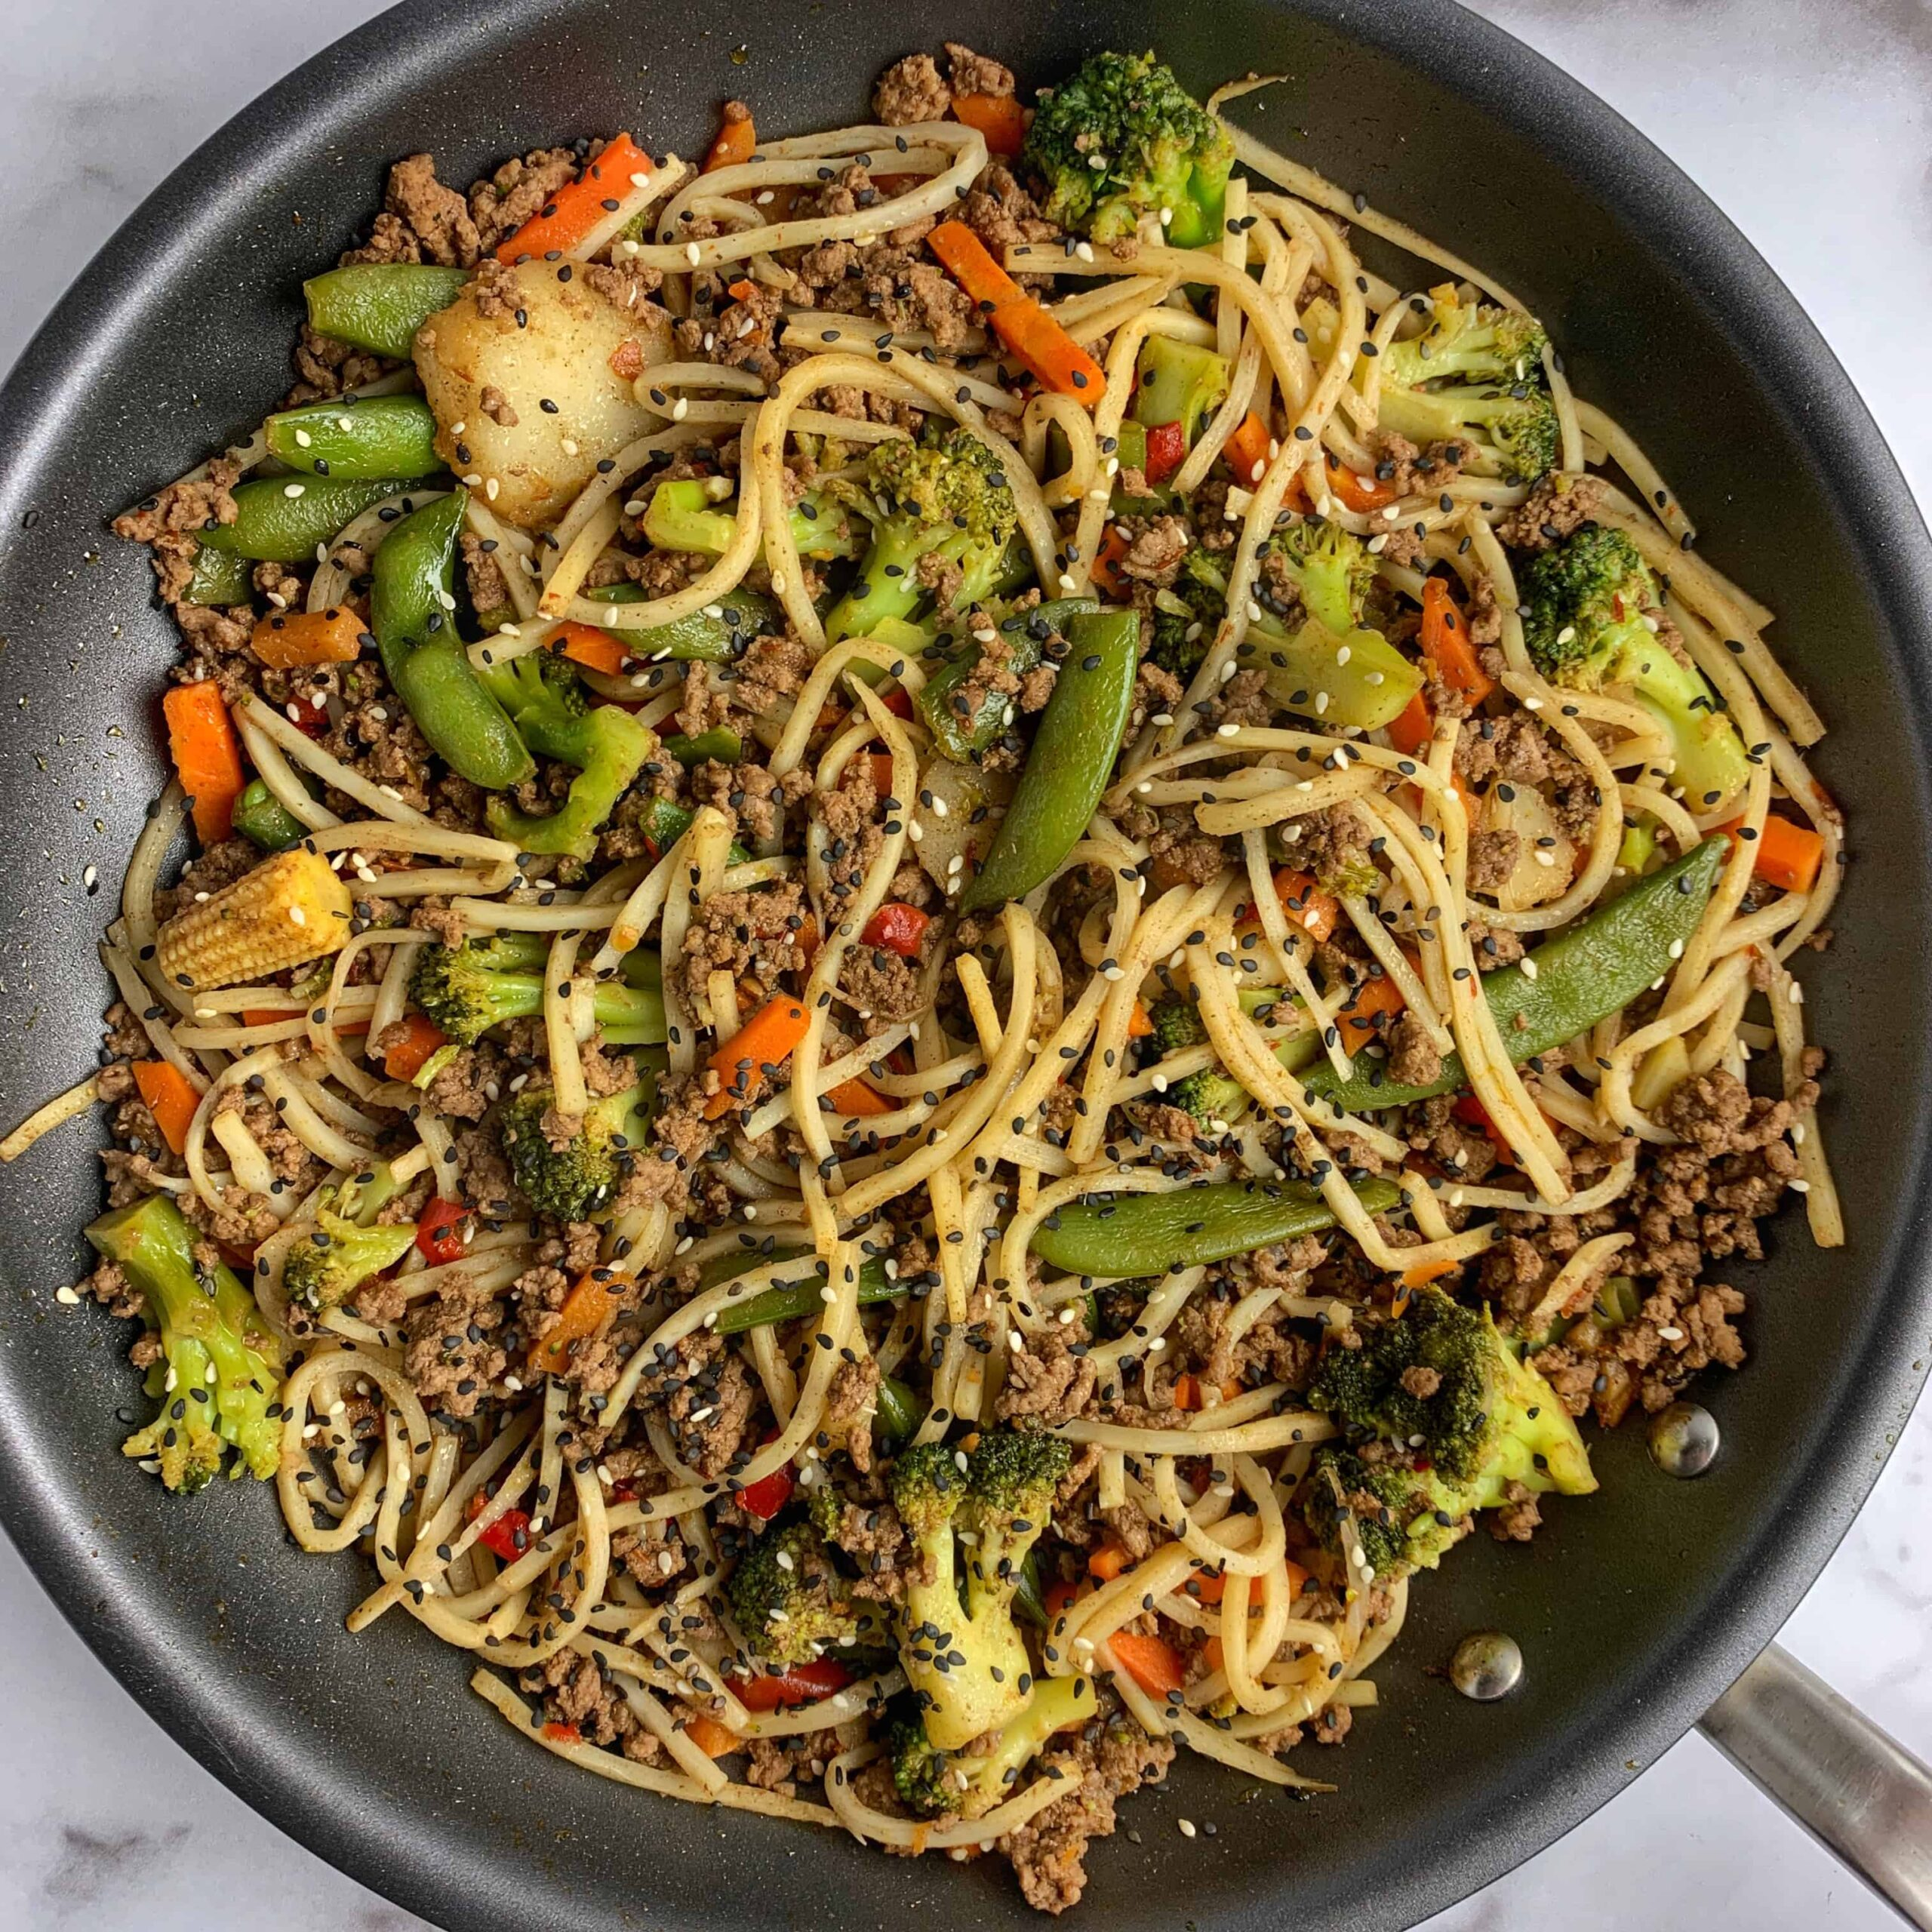 5 Spice Ground Beef Stir Fry With Noodles A 20 Minute Recipe